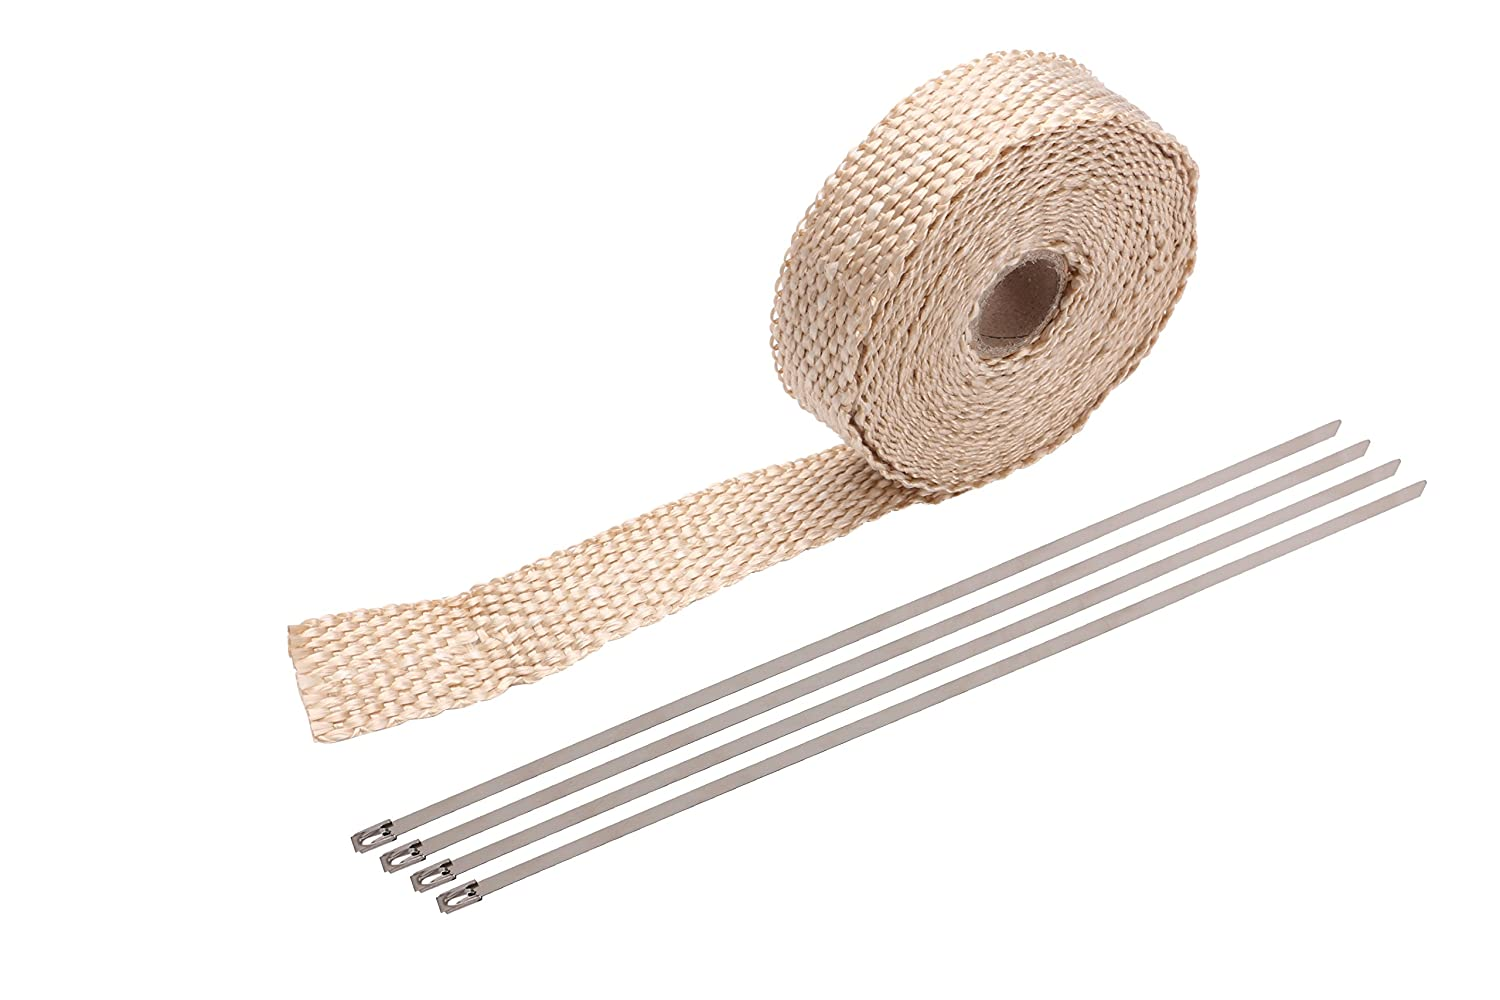 Titanium Exhaust Wrap 2 x 50 Roll for Motorcycle Fiberglass Heat Shield Tape with Stainless Ties Pacewalker